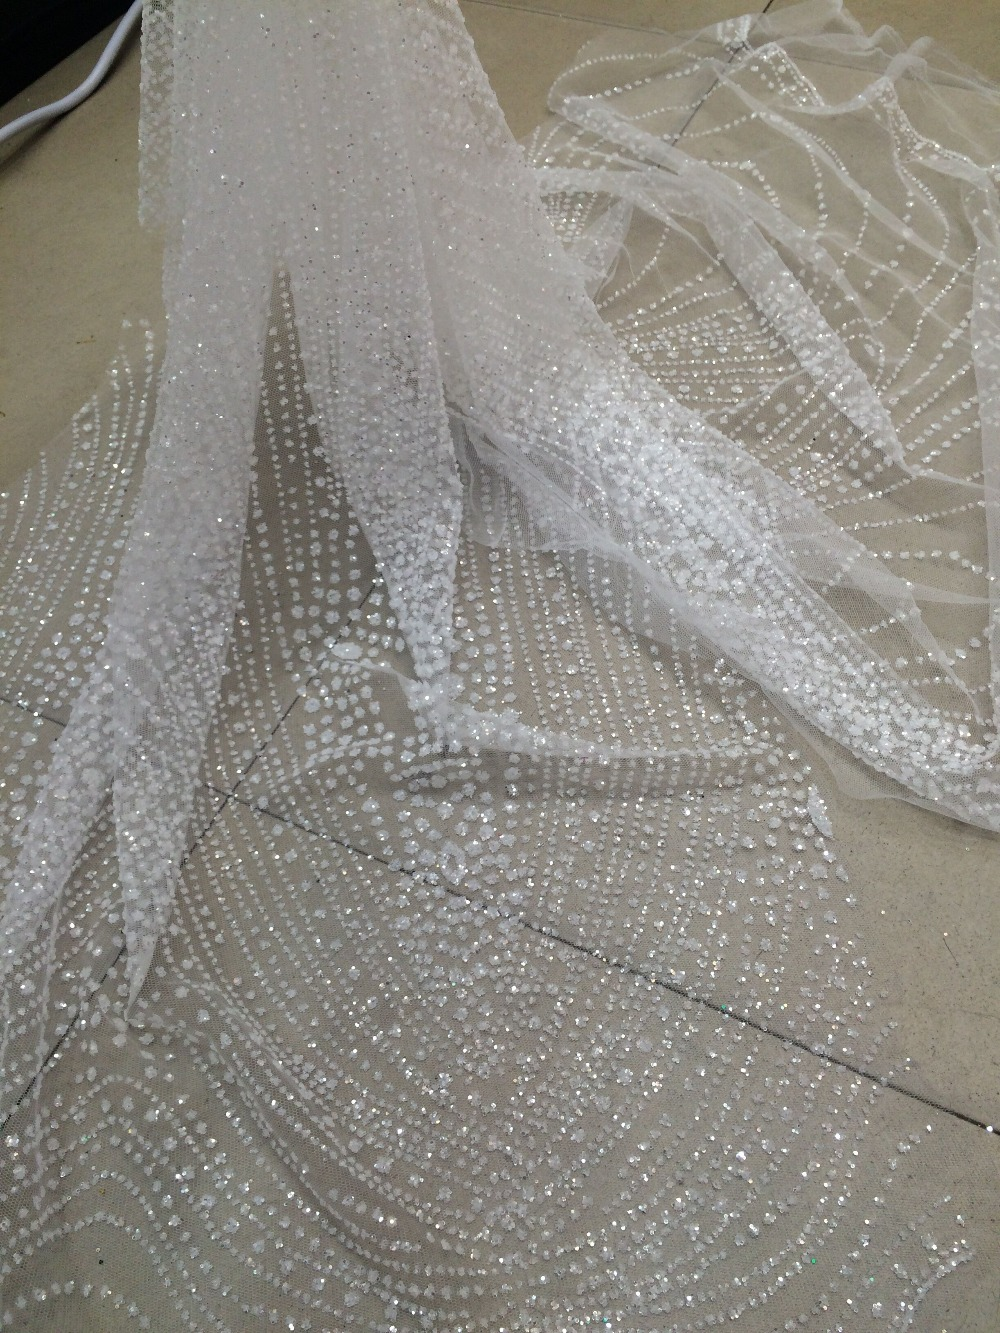 special David 52721 1 tulle lace fabric with glued glitter white african tulle net lace fabric